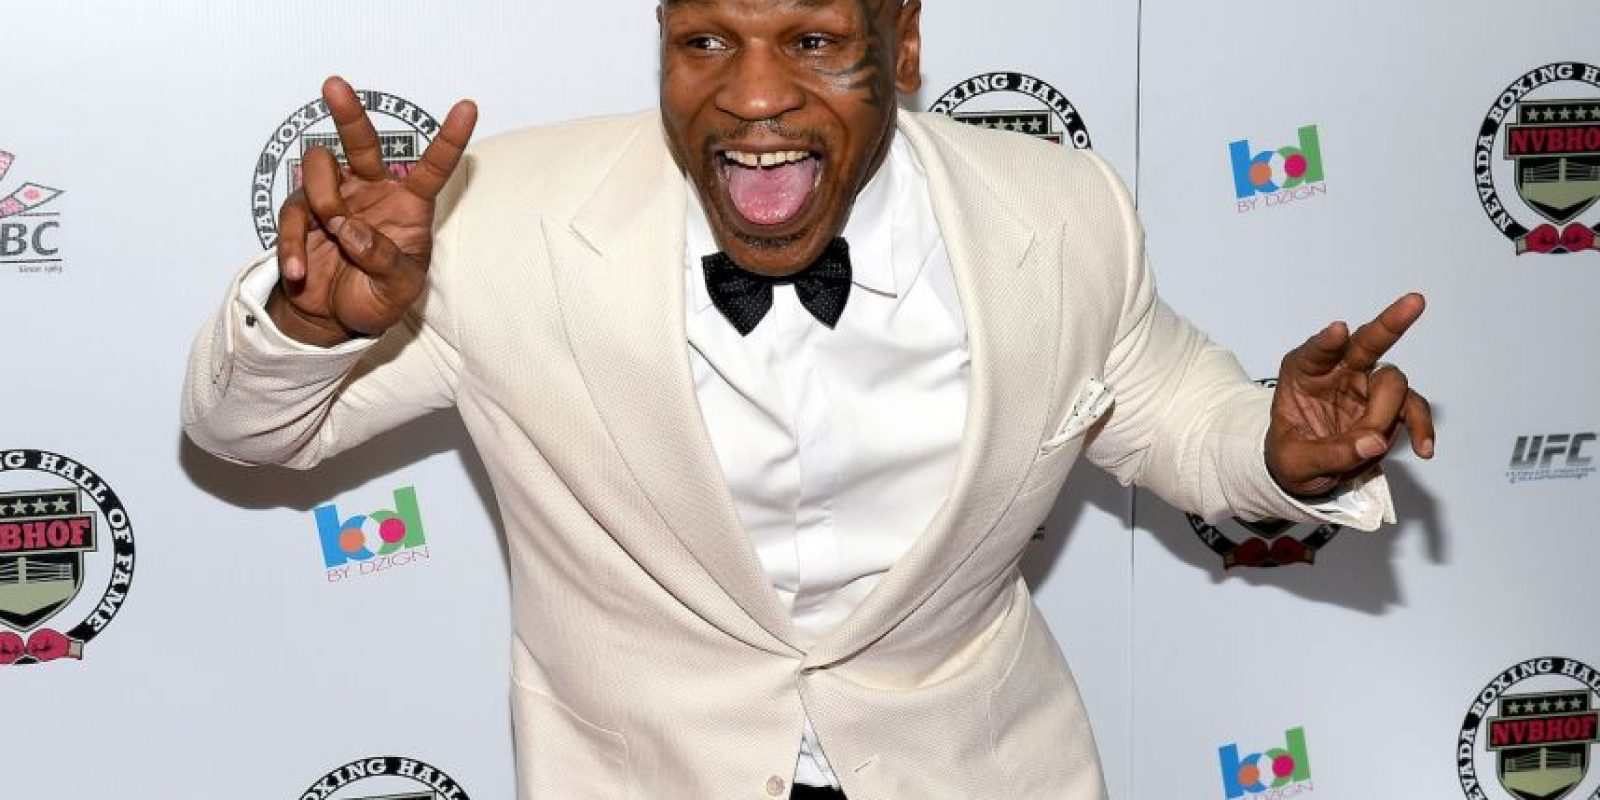 6. Mike Tyson Foto: Getty Images